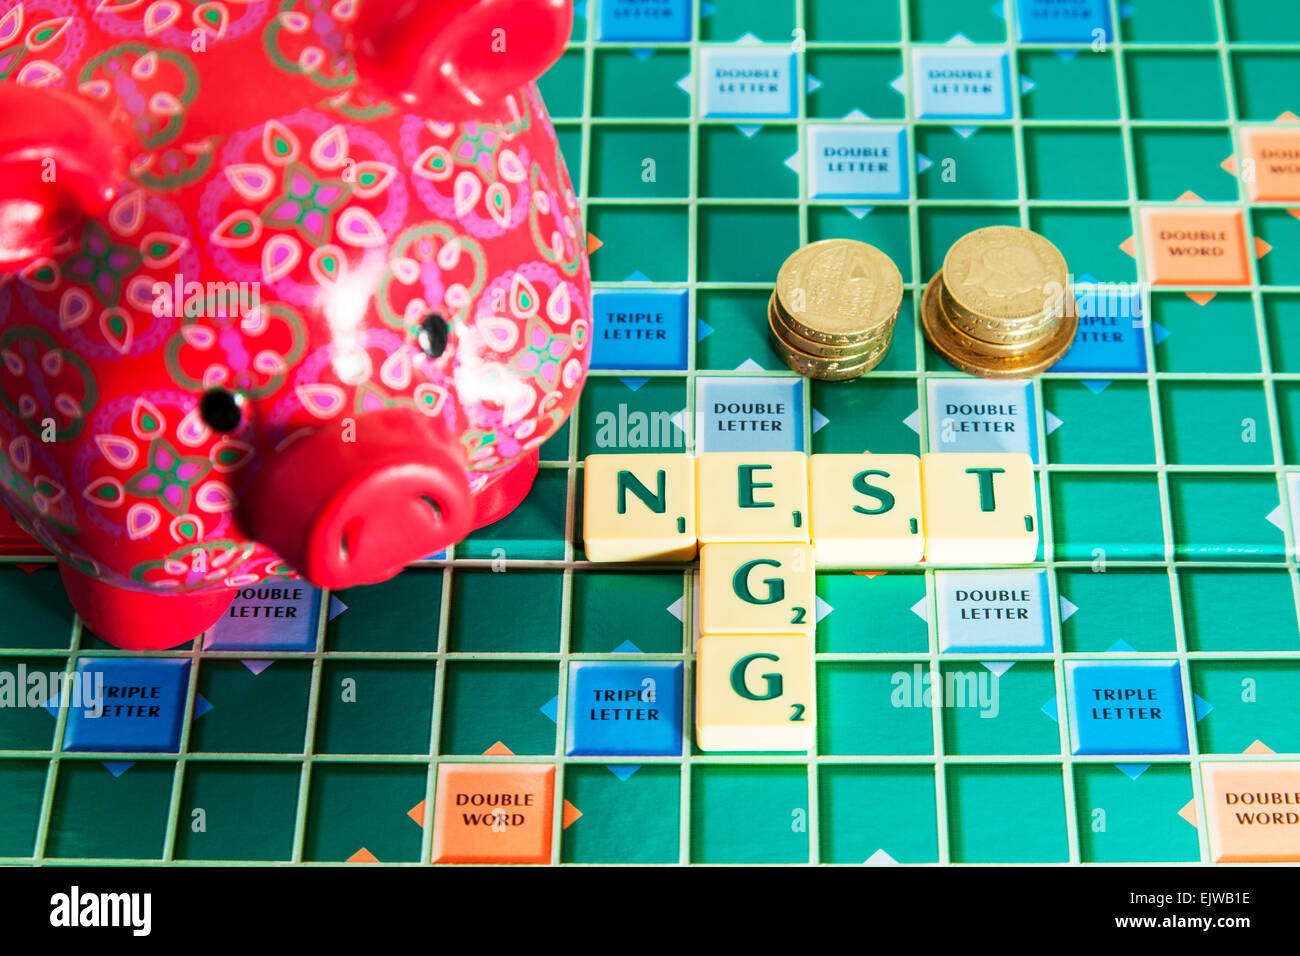 piggy bank nest egg savings money pension future save cash words using scrabble tiles to spell out - Stock Image